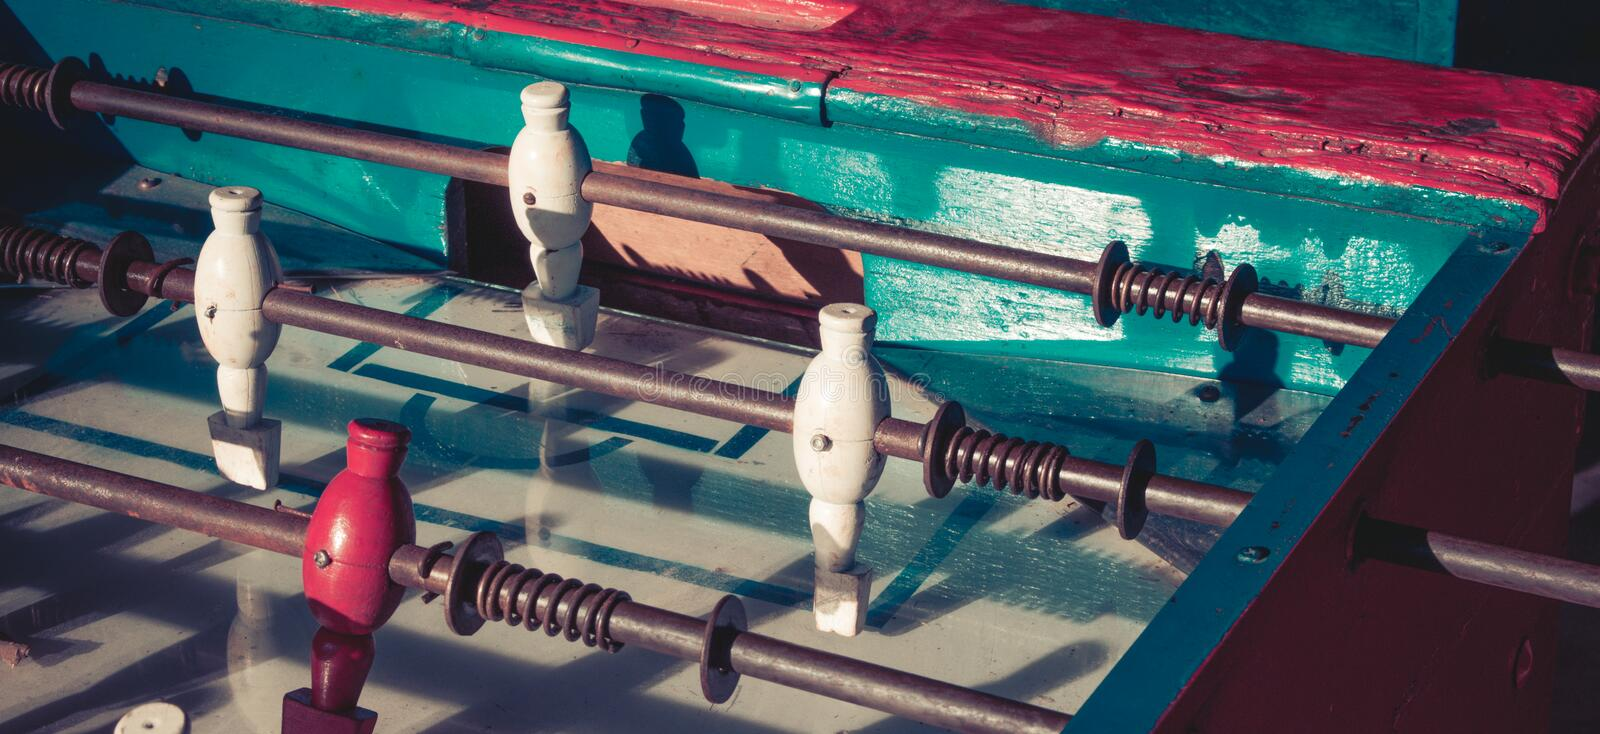 Ancient old wood classic aged Foosball table or table soccer with vintage effect photo style. royalty free stock photo